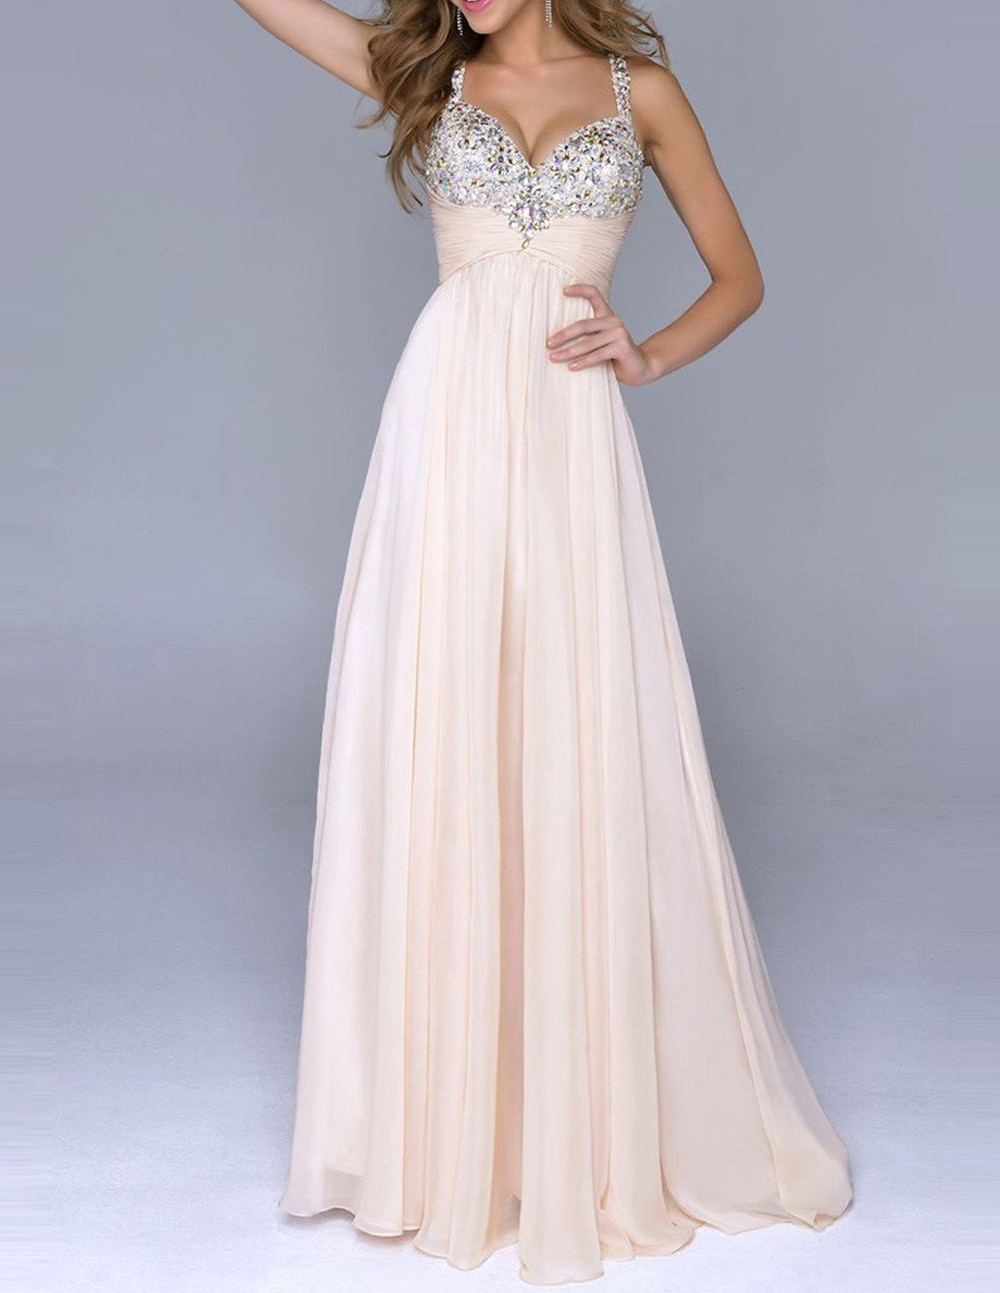 Pale Pink Prom Dresses Unique A Line With Straps Open Back Backless Chiffon  Prom Gowns on Storenvy c6447efde